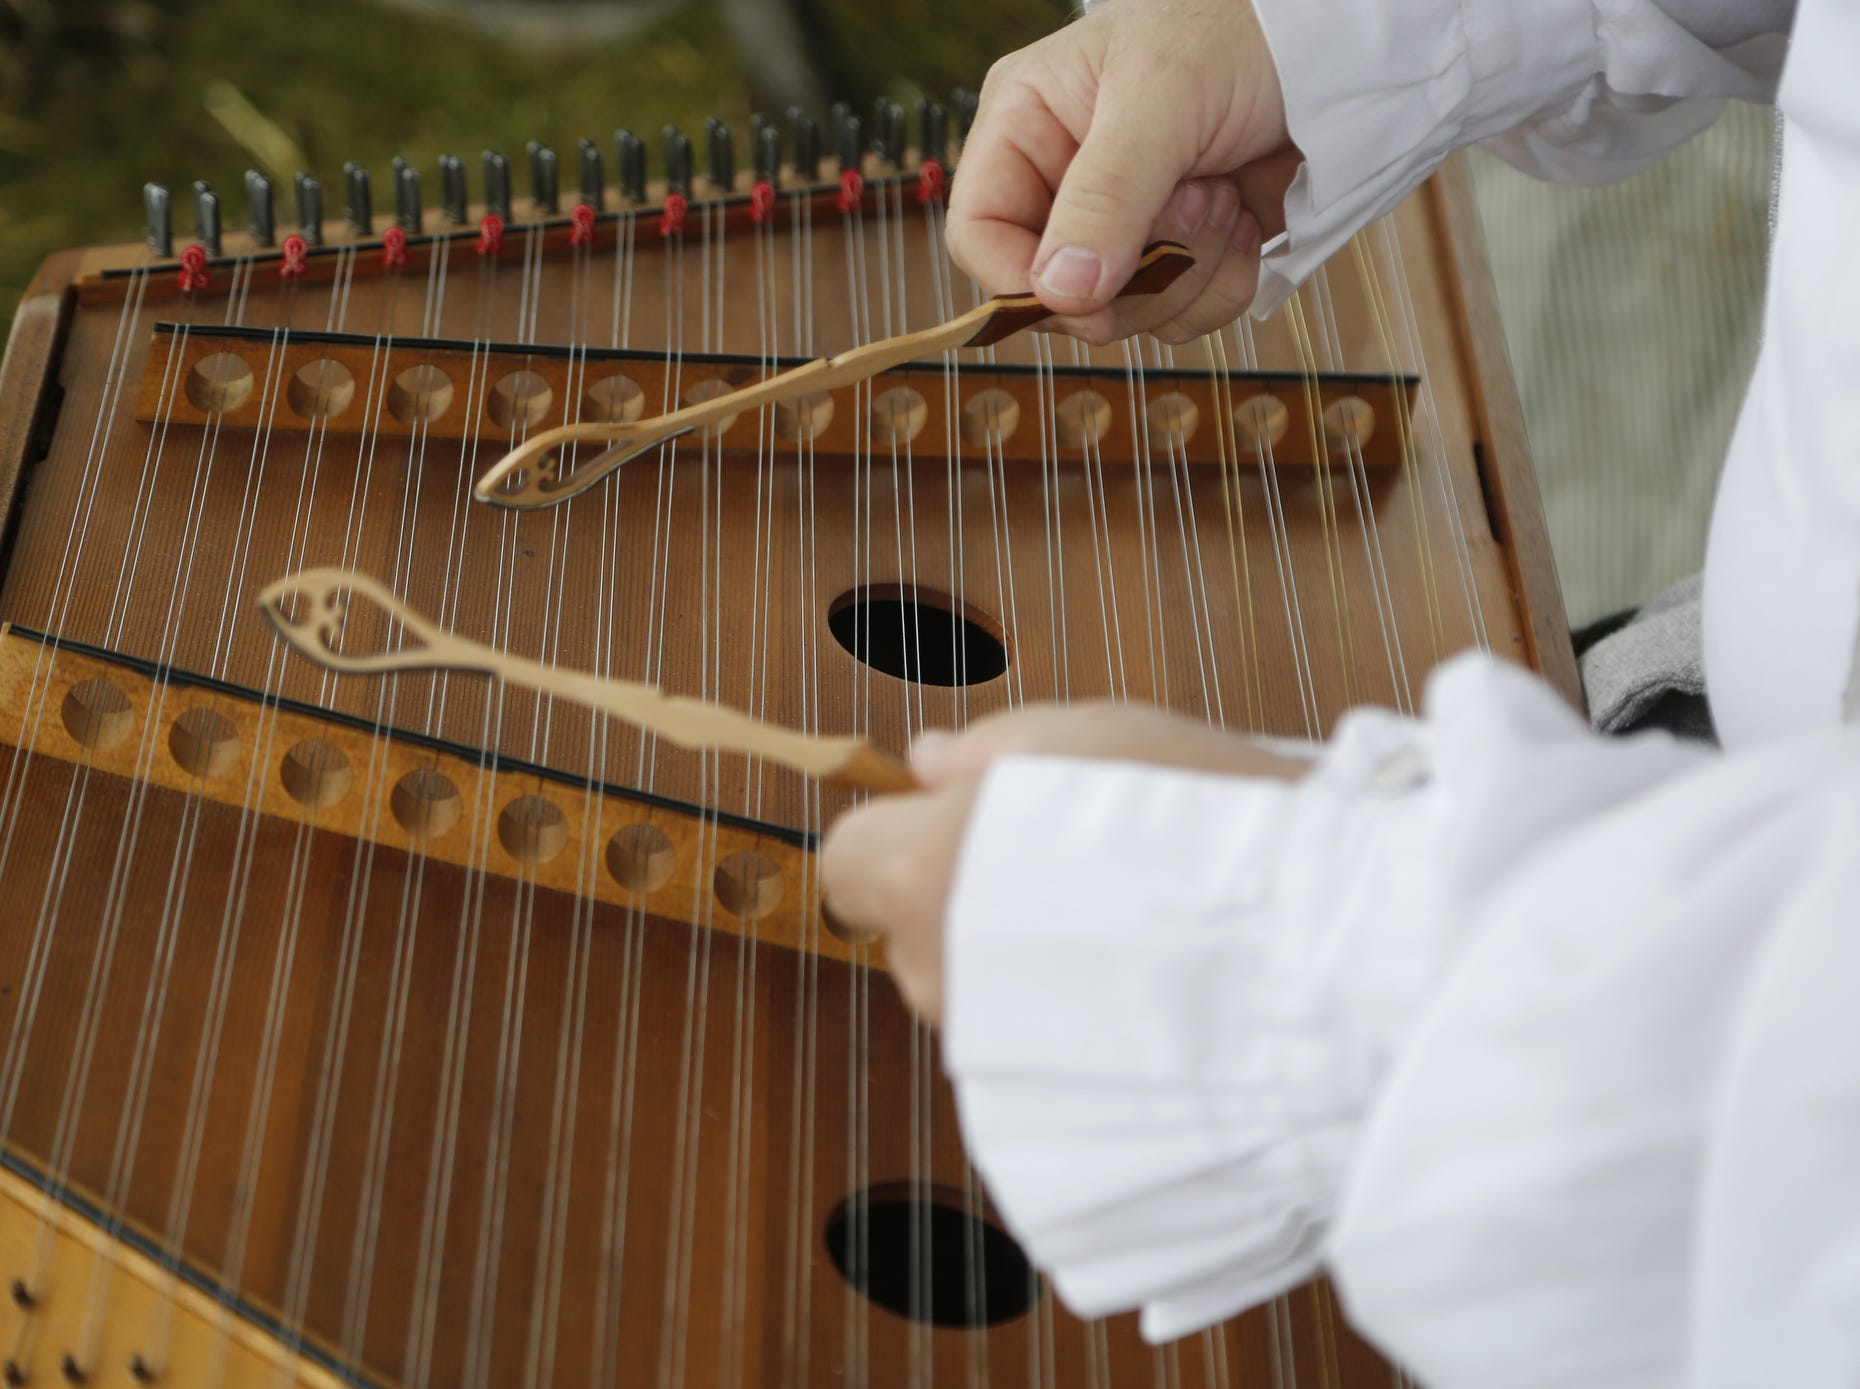 Musician Tim Schaiper plays a tune on his hammered dulcimer during the Feast of the Hunters' Moon Saturday, October 1, 2016, at Fort Ouiatenon. Schaiper, who is from Miamisburg, Ohio, has been coming to the Feast for the past eight to ten years.